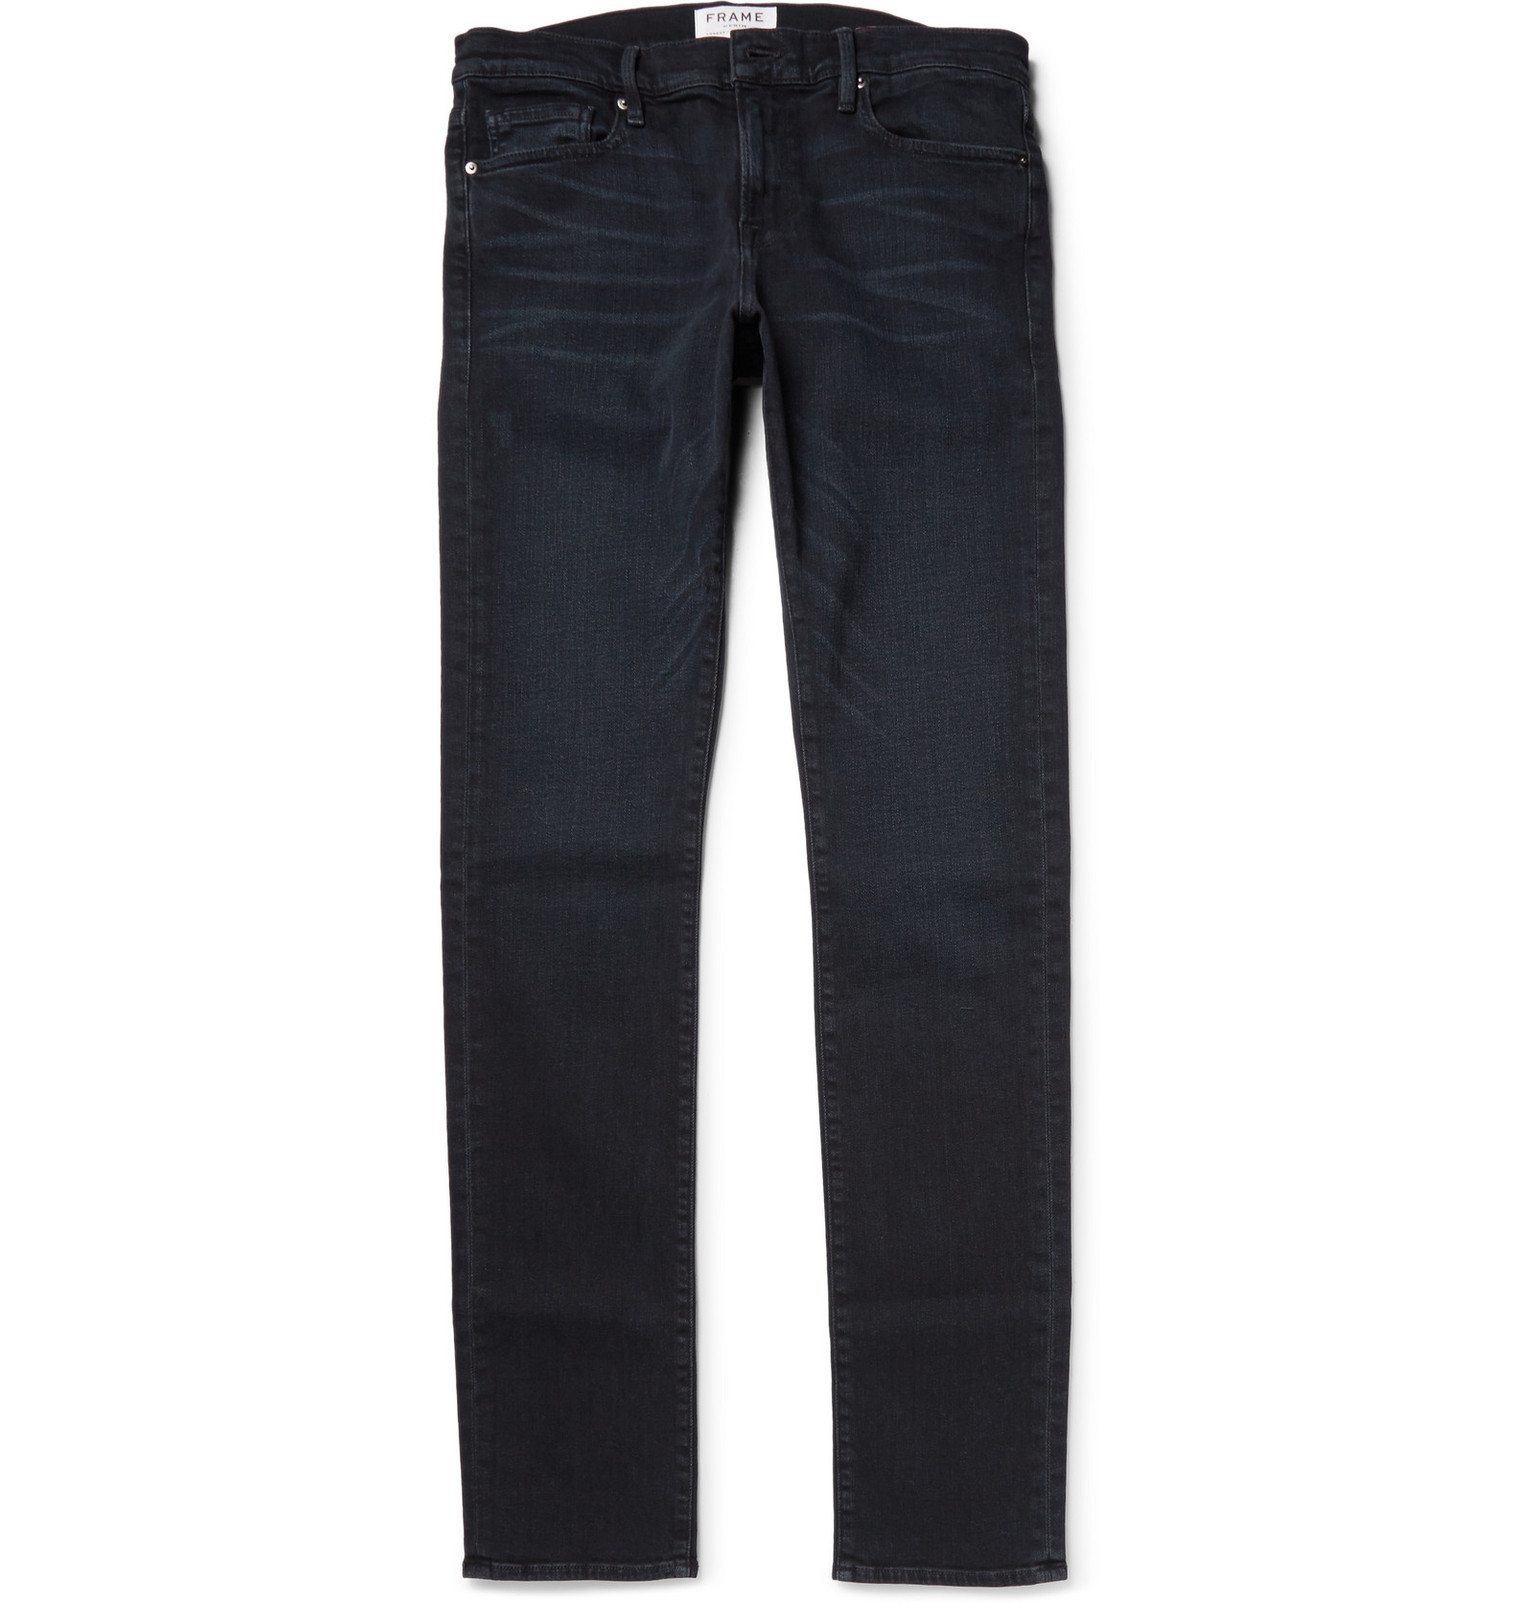 slim fit jeans - Black Frame Denim VuFiKvnOV